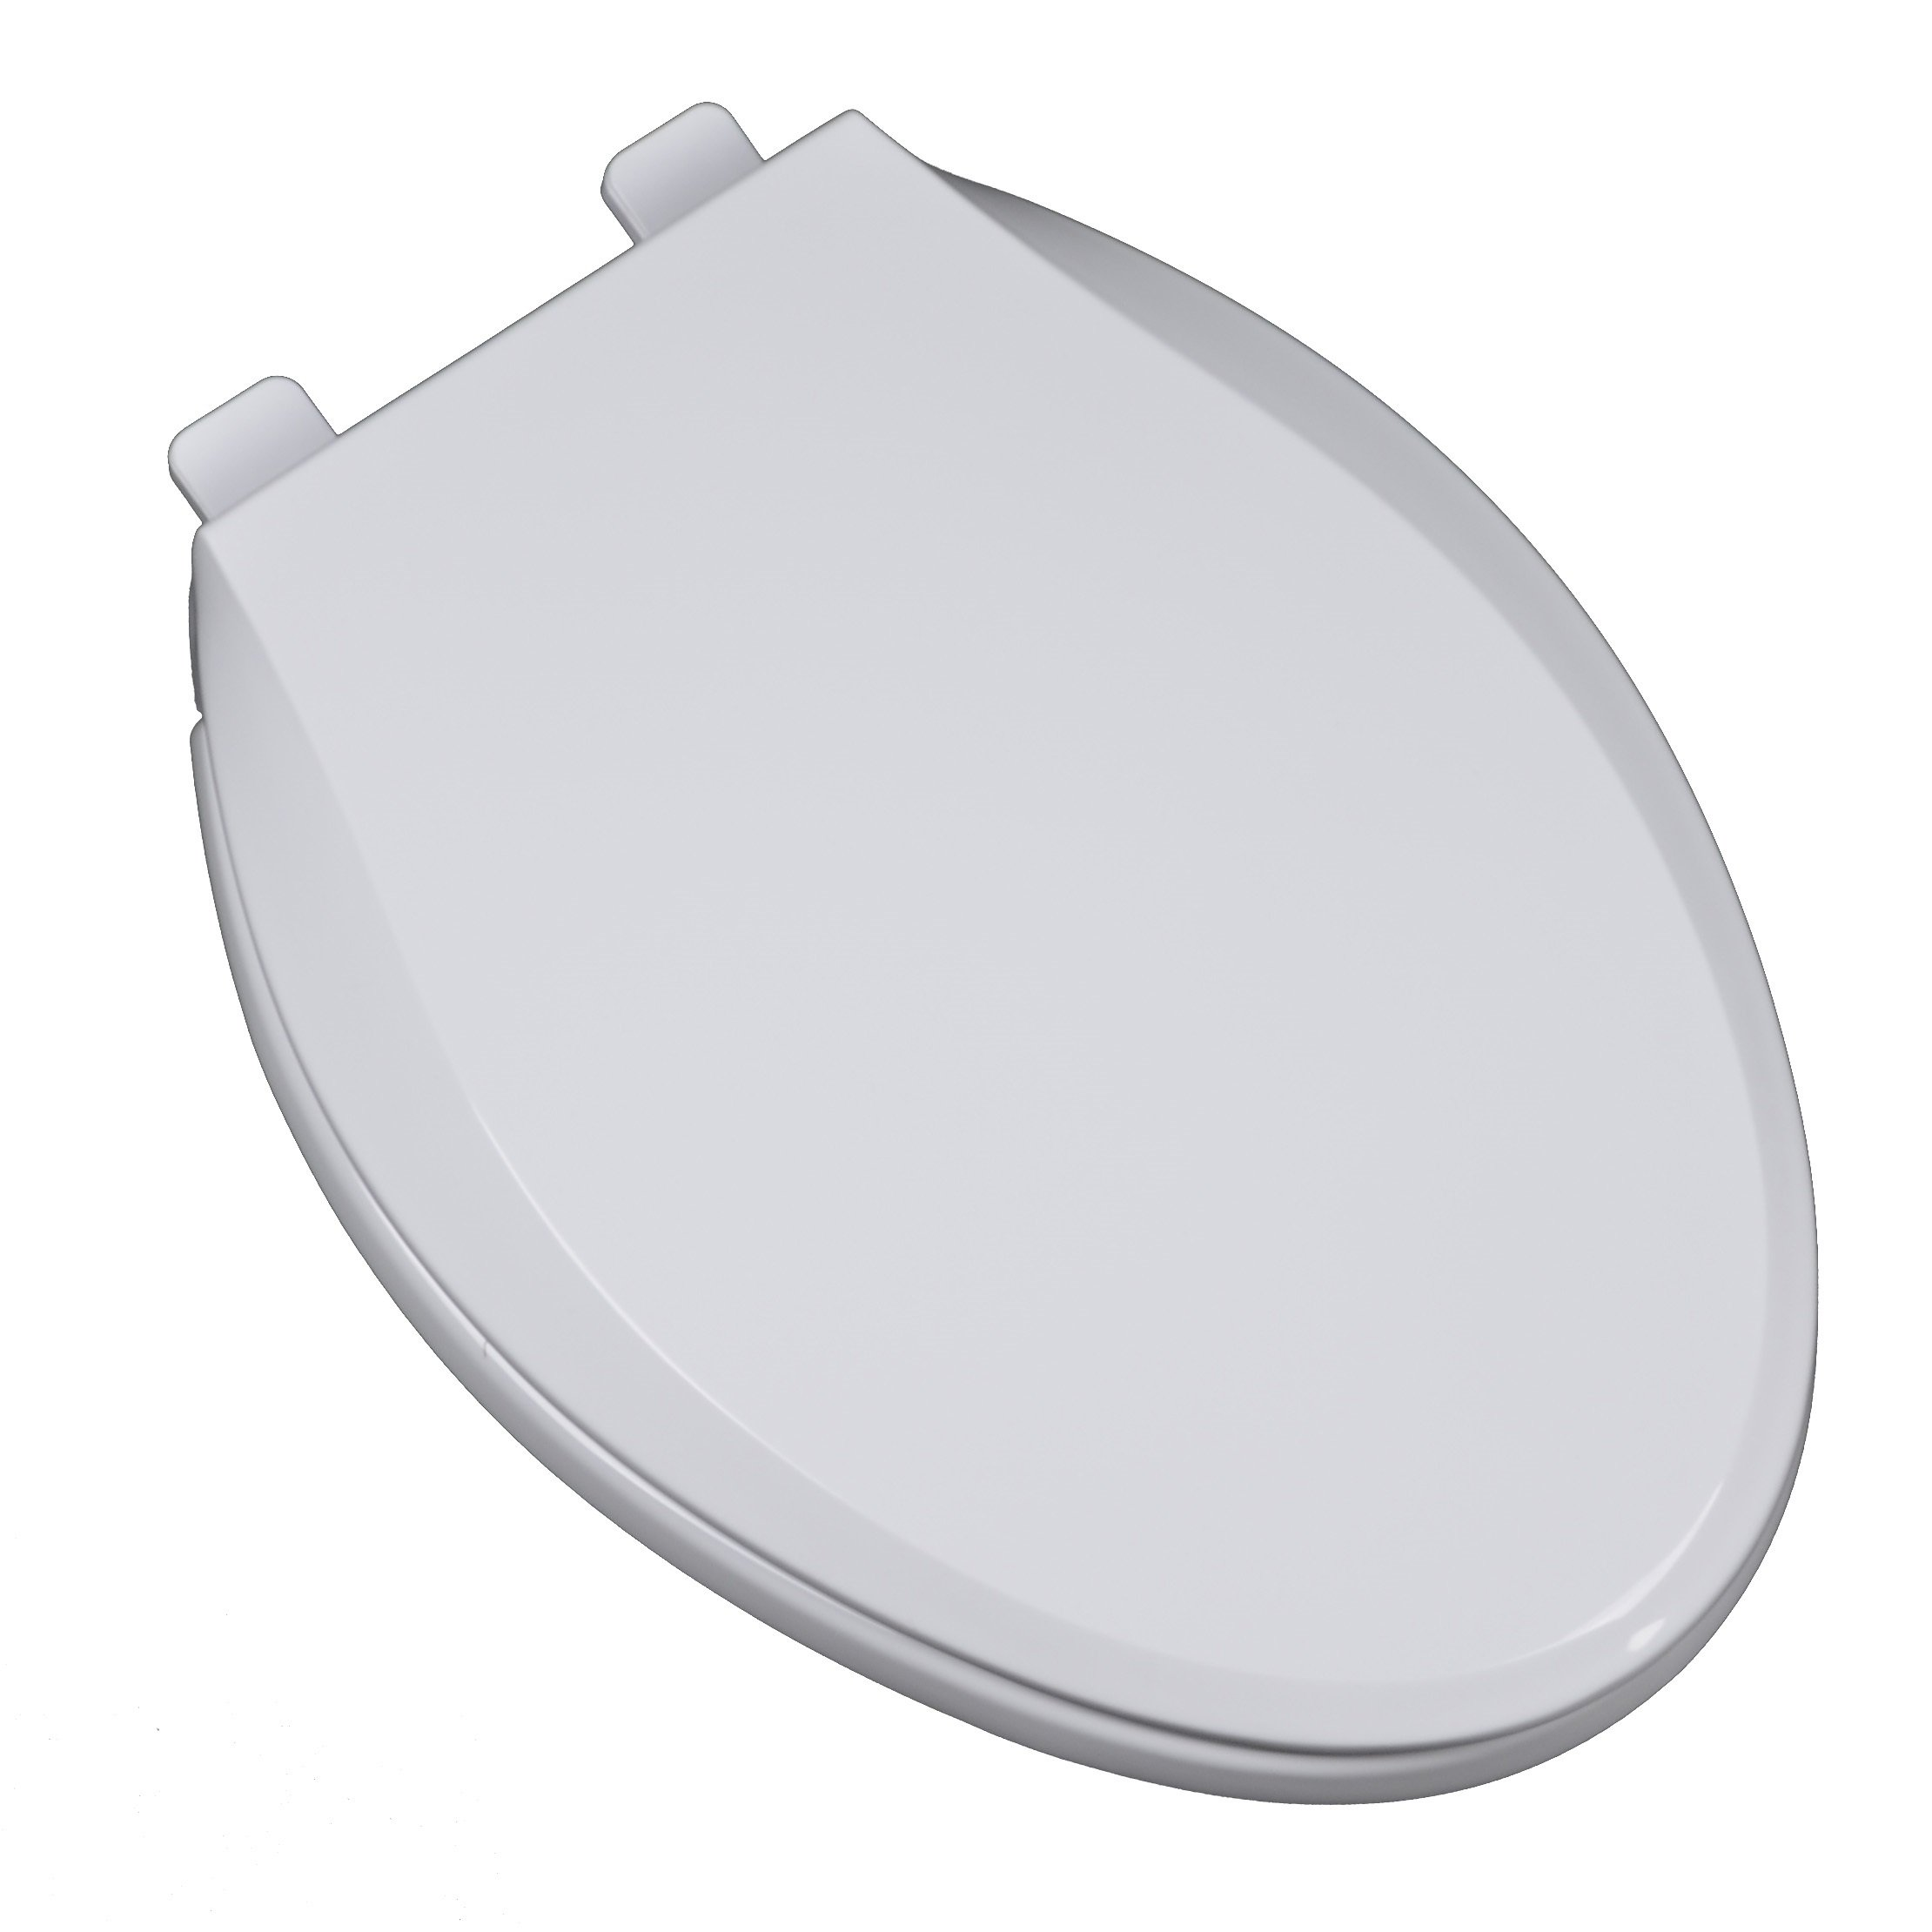 Bath Décor 3F1E2-00 Light Commercial Heavy Duty Plastic Slow Close Elongated Toilet Seat with Adjustable Hinge